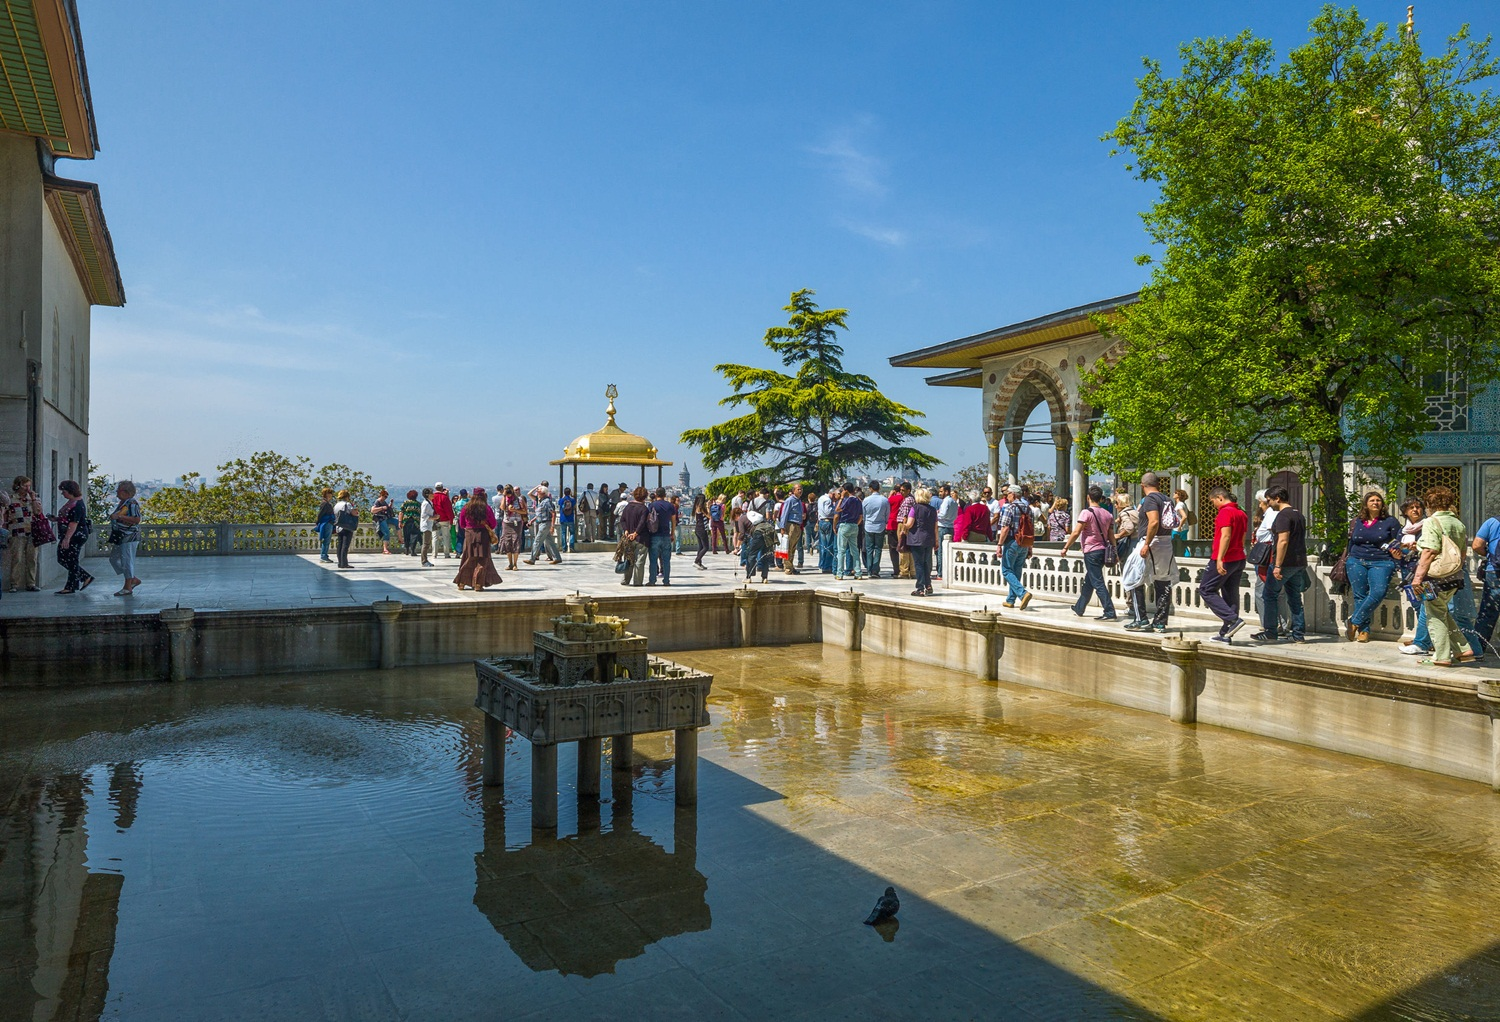 Topkapi Palace: the political center of the Ottoman Empire